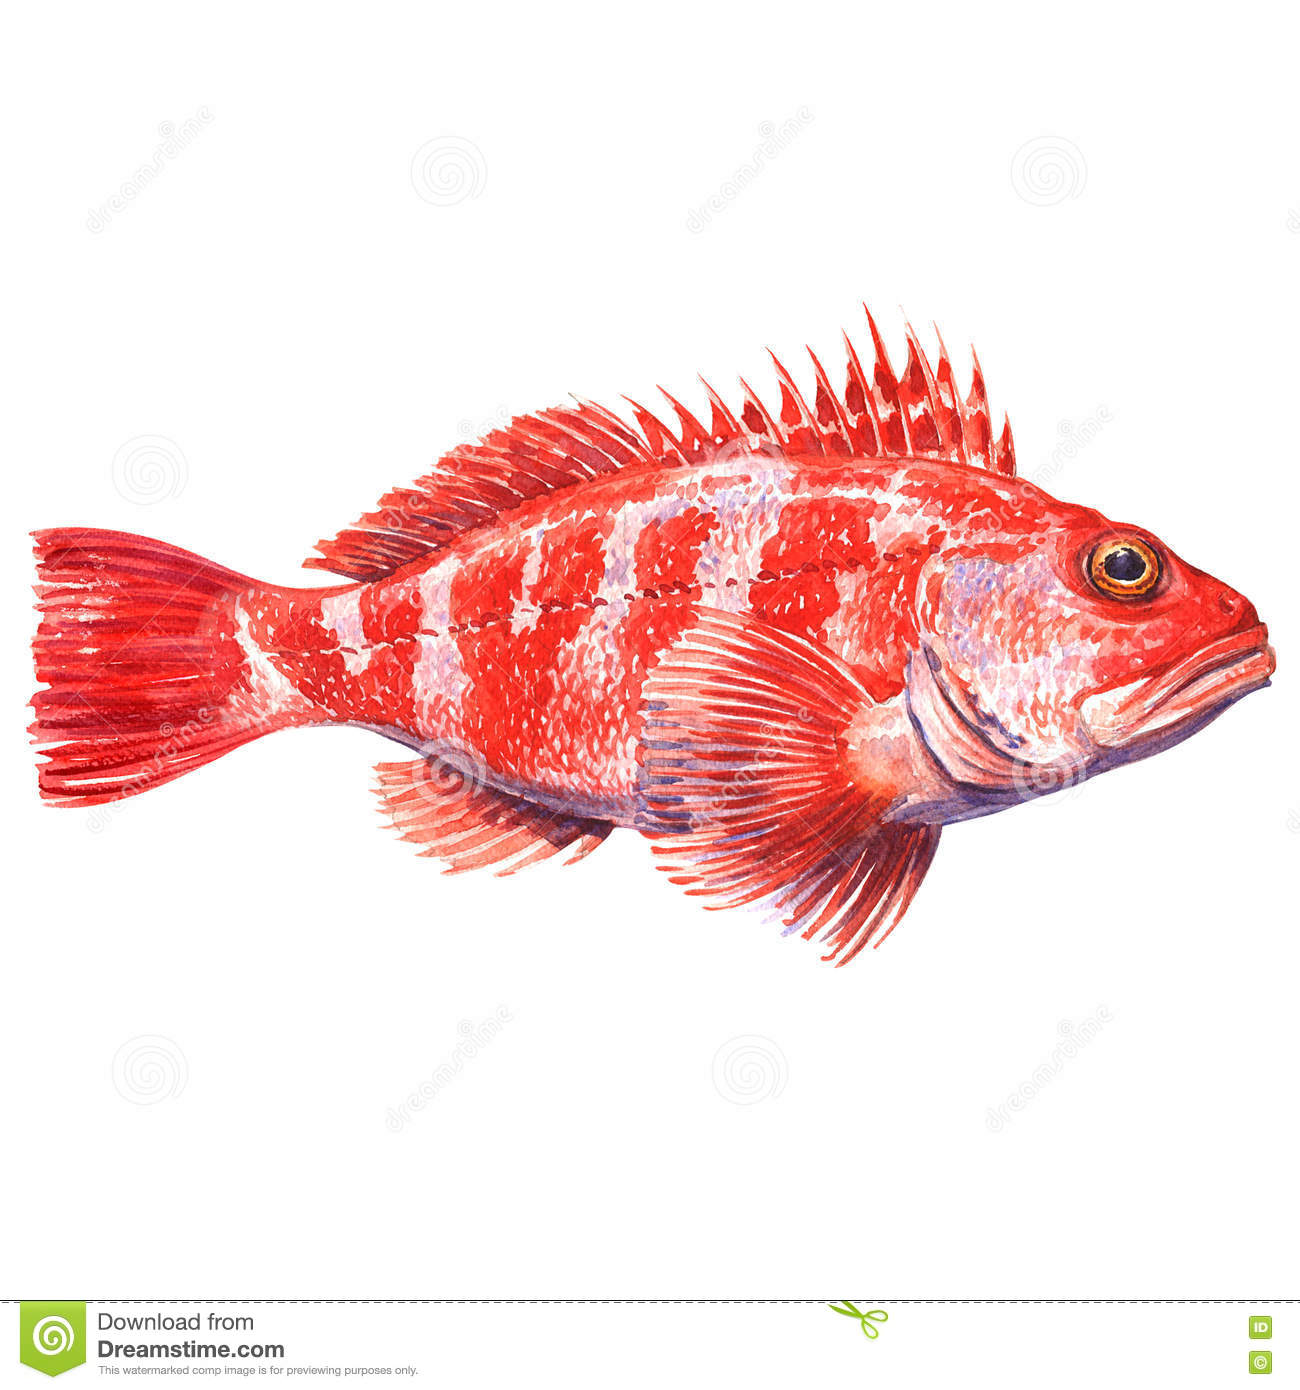 Rockfish Stock Illustrations – 128 Rockfish Stock Illustrations ...